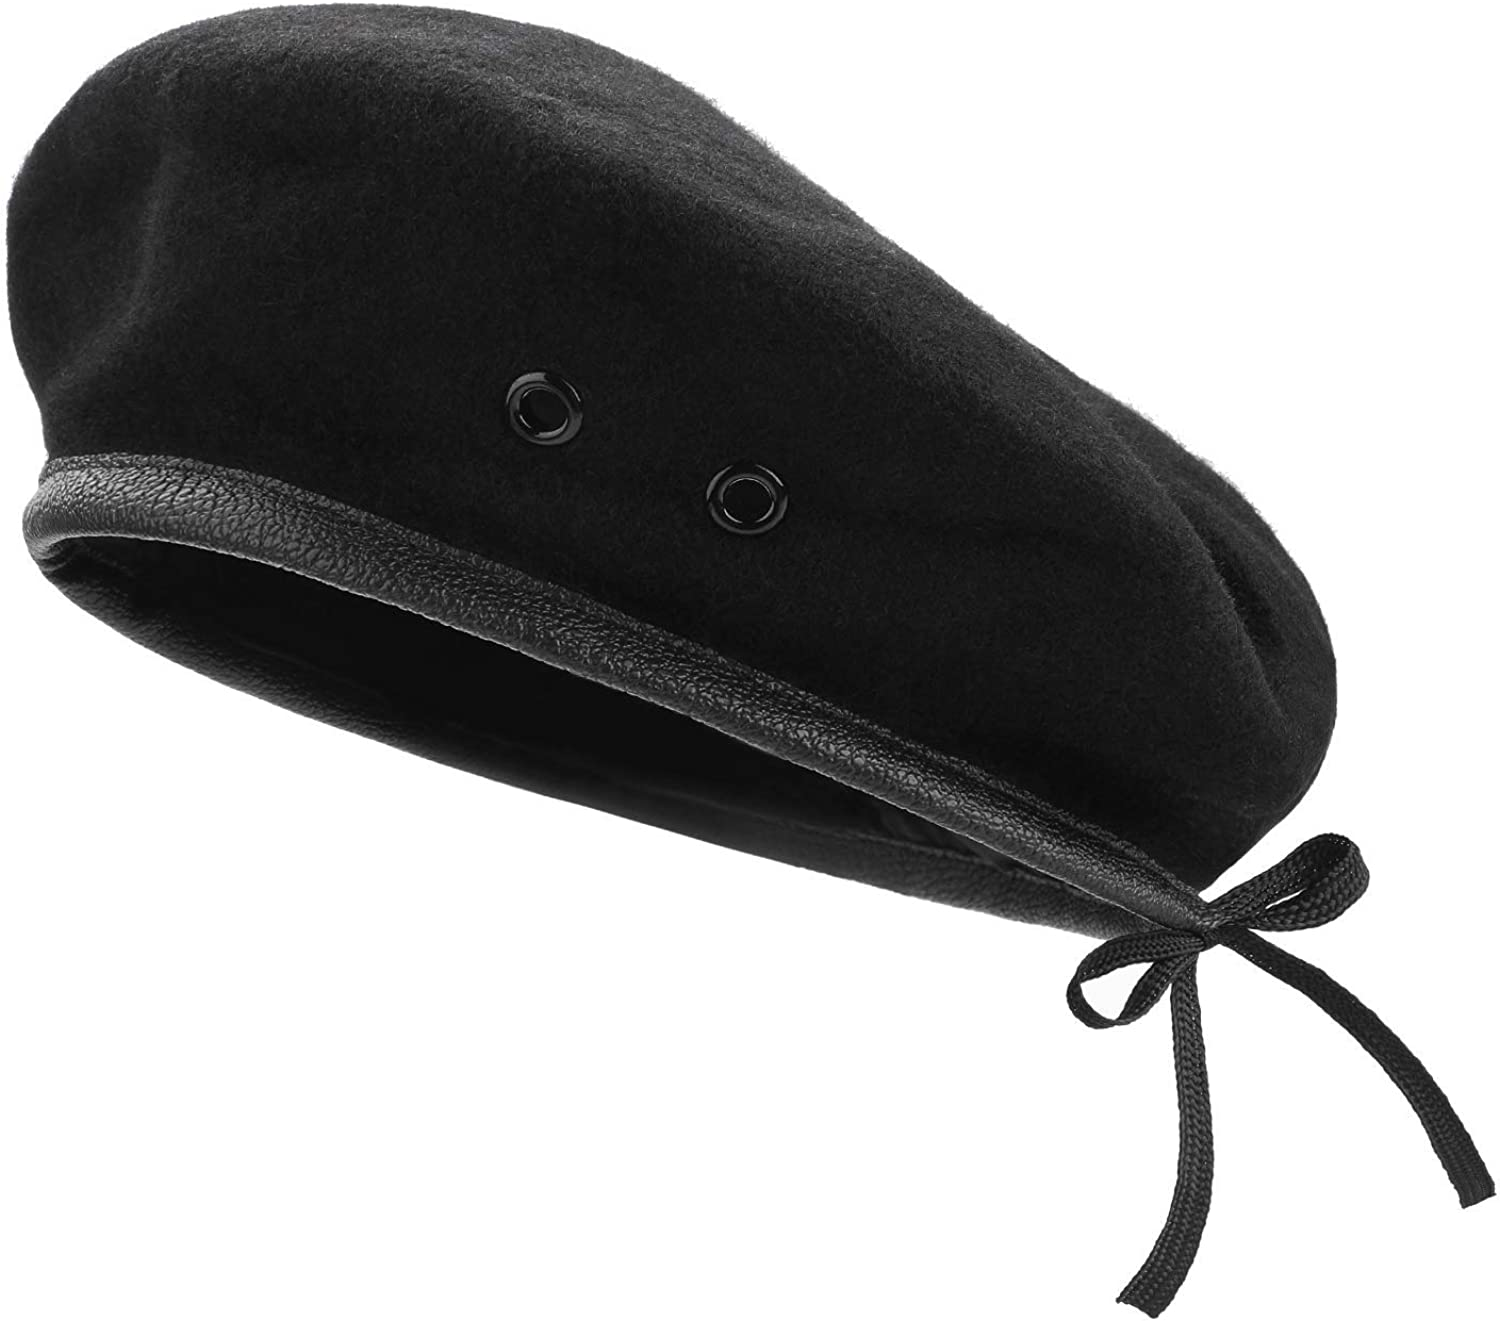 AYPOW Wool Berets, Mens Ladies Girls Boys Military Army Style Berets with Leather Trim - Adjustable, One Size Fits Most